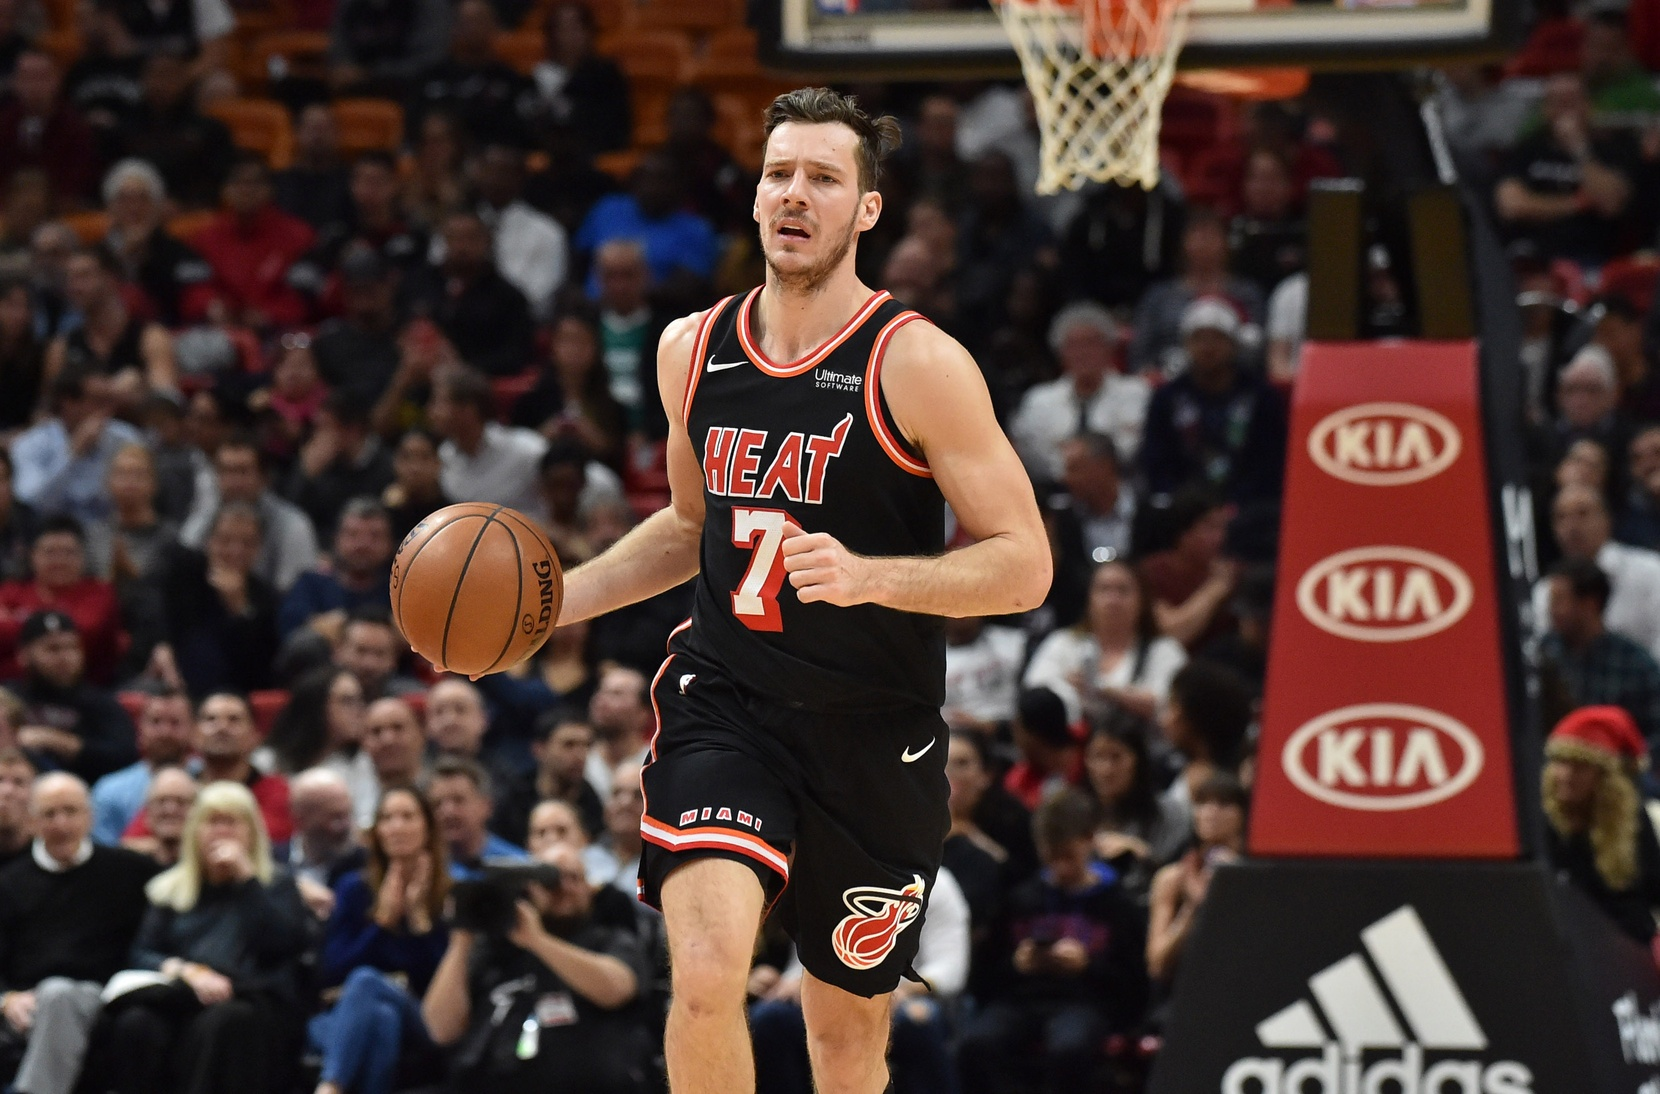 ae01b0924d5 Goran Dragic to replace injured Kevin Love on Team LeBron in 2018 NBA All-Star  Game